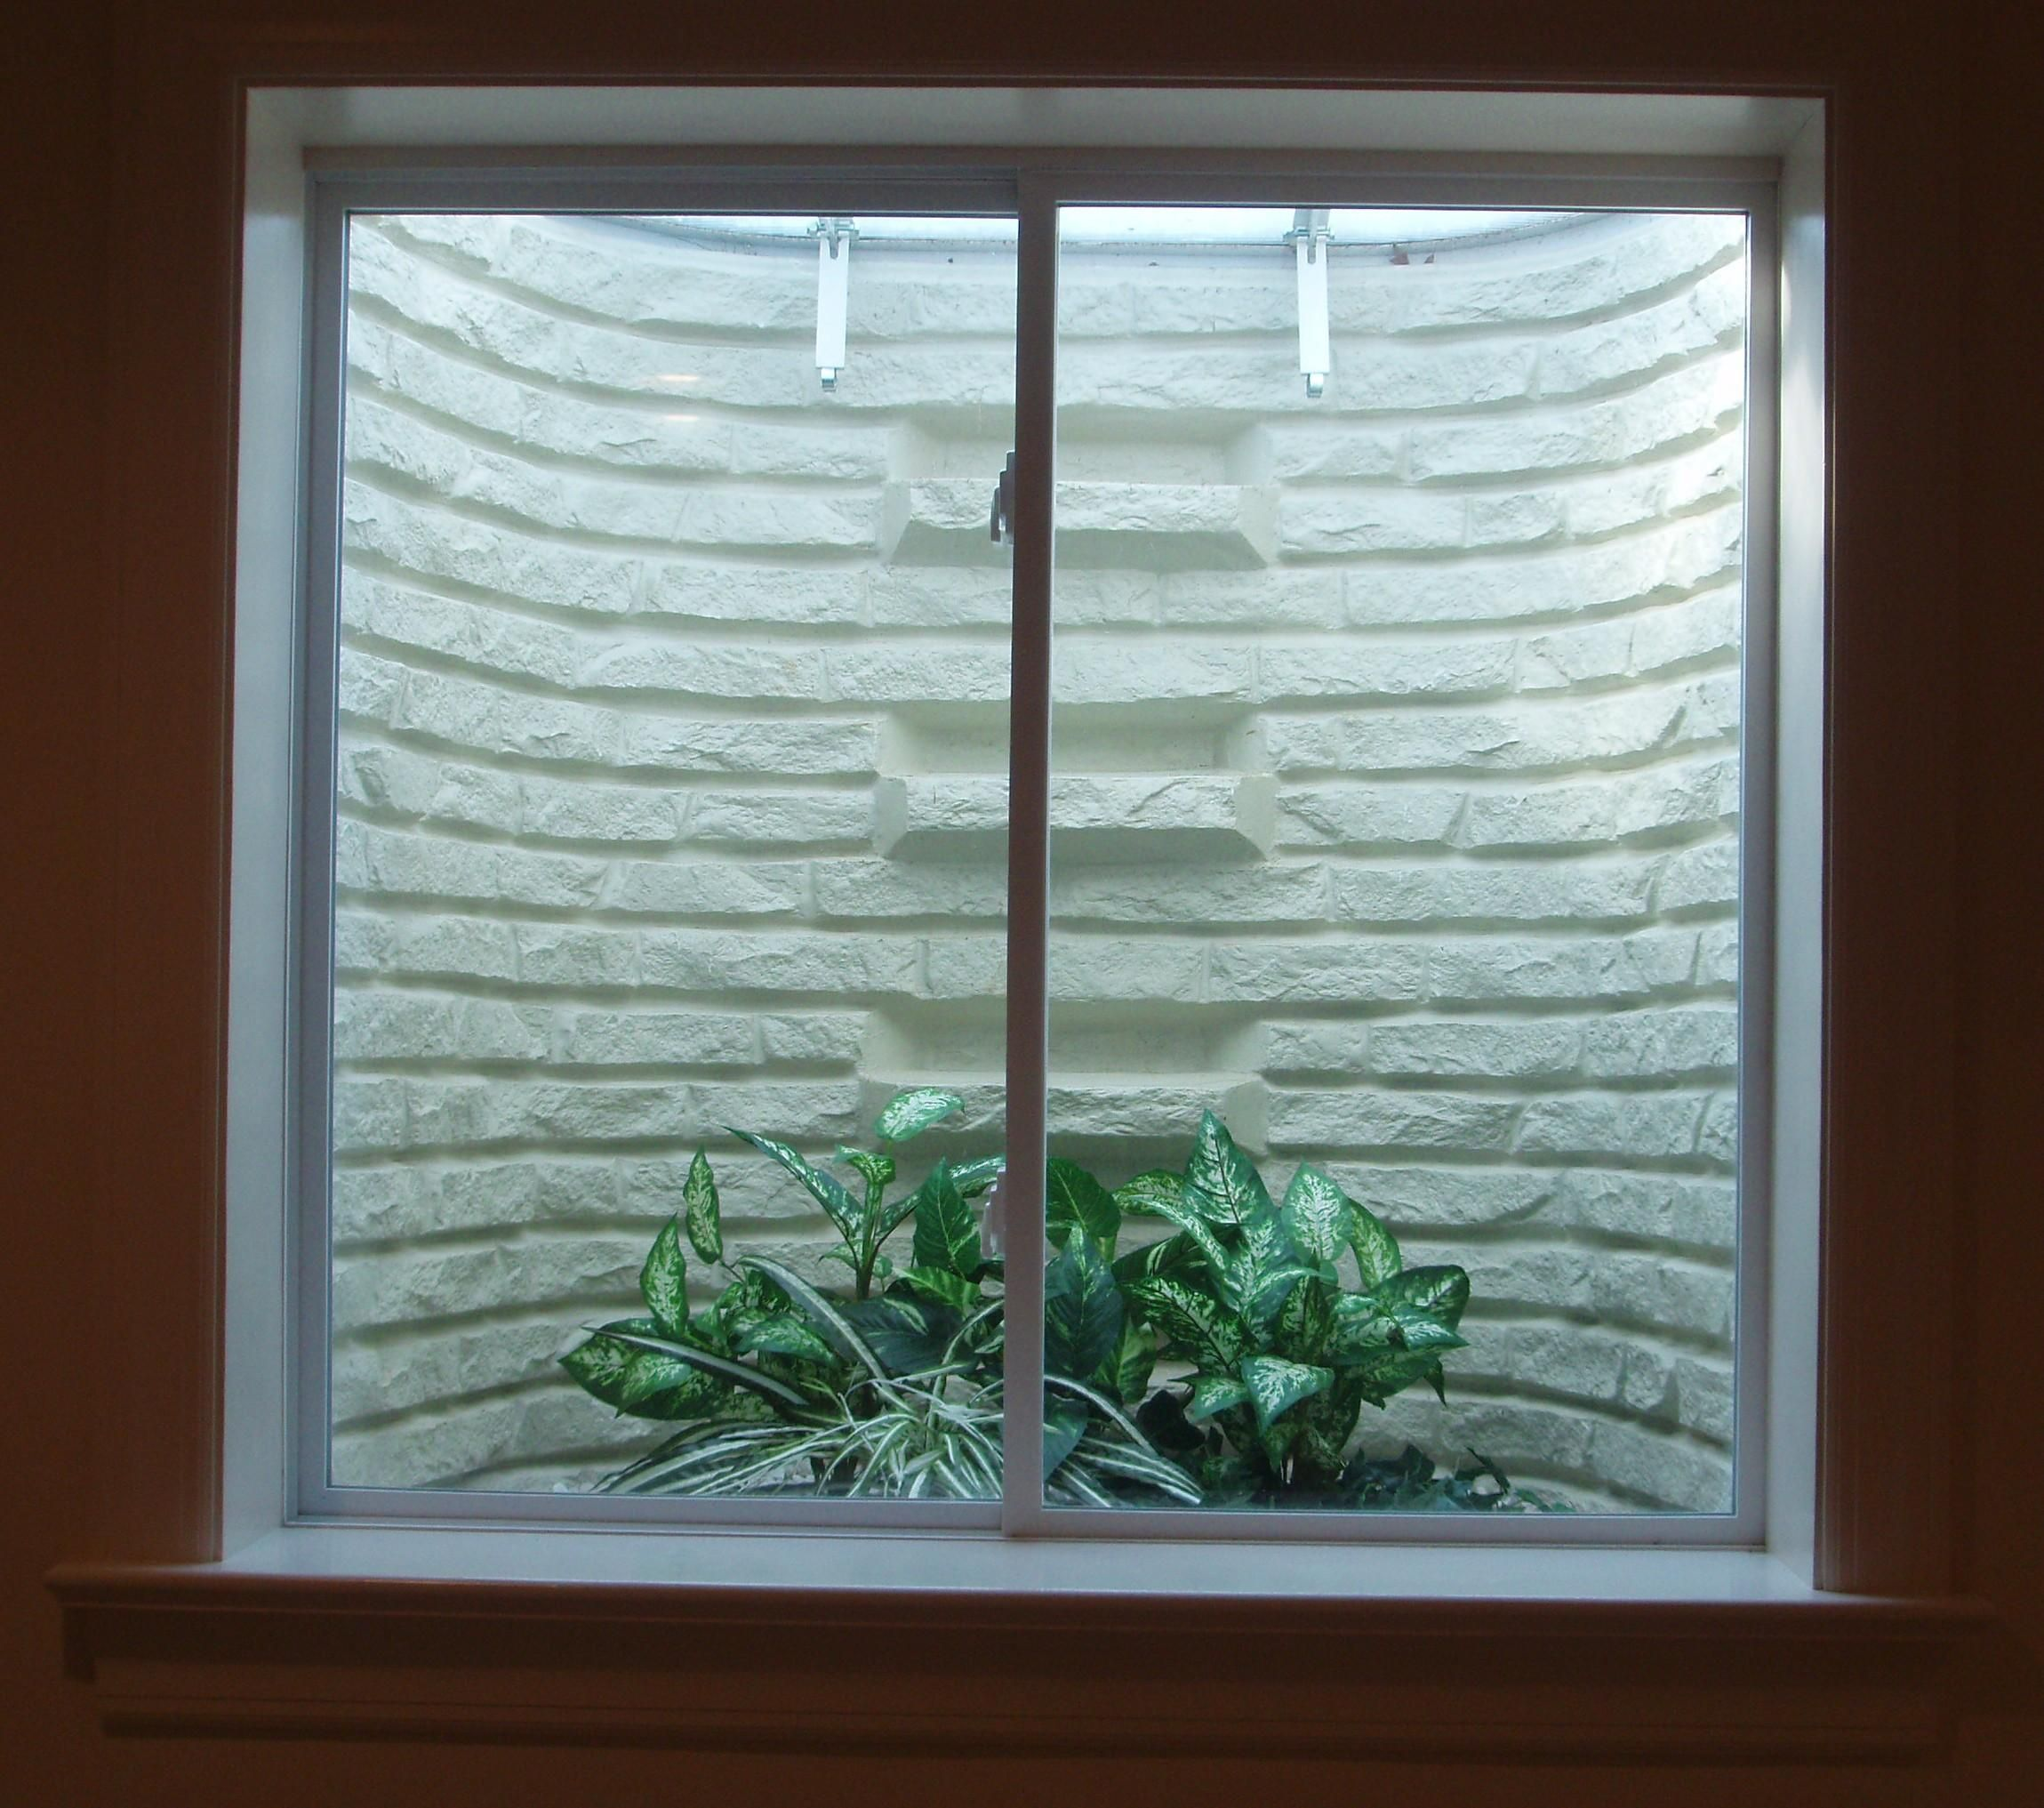 how much to install egress window how much does an egress window cost installation best mirror design ideas to inspire your homes new look building